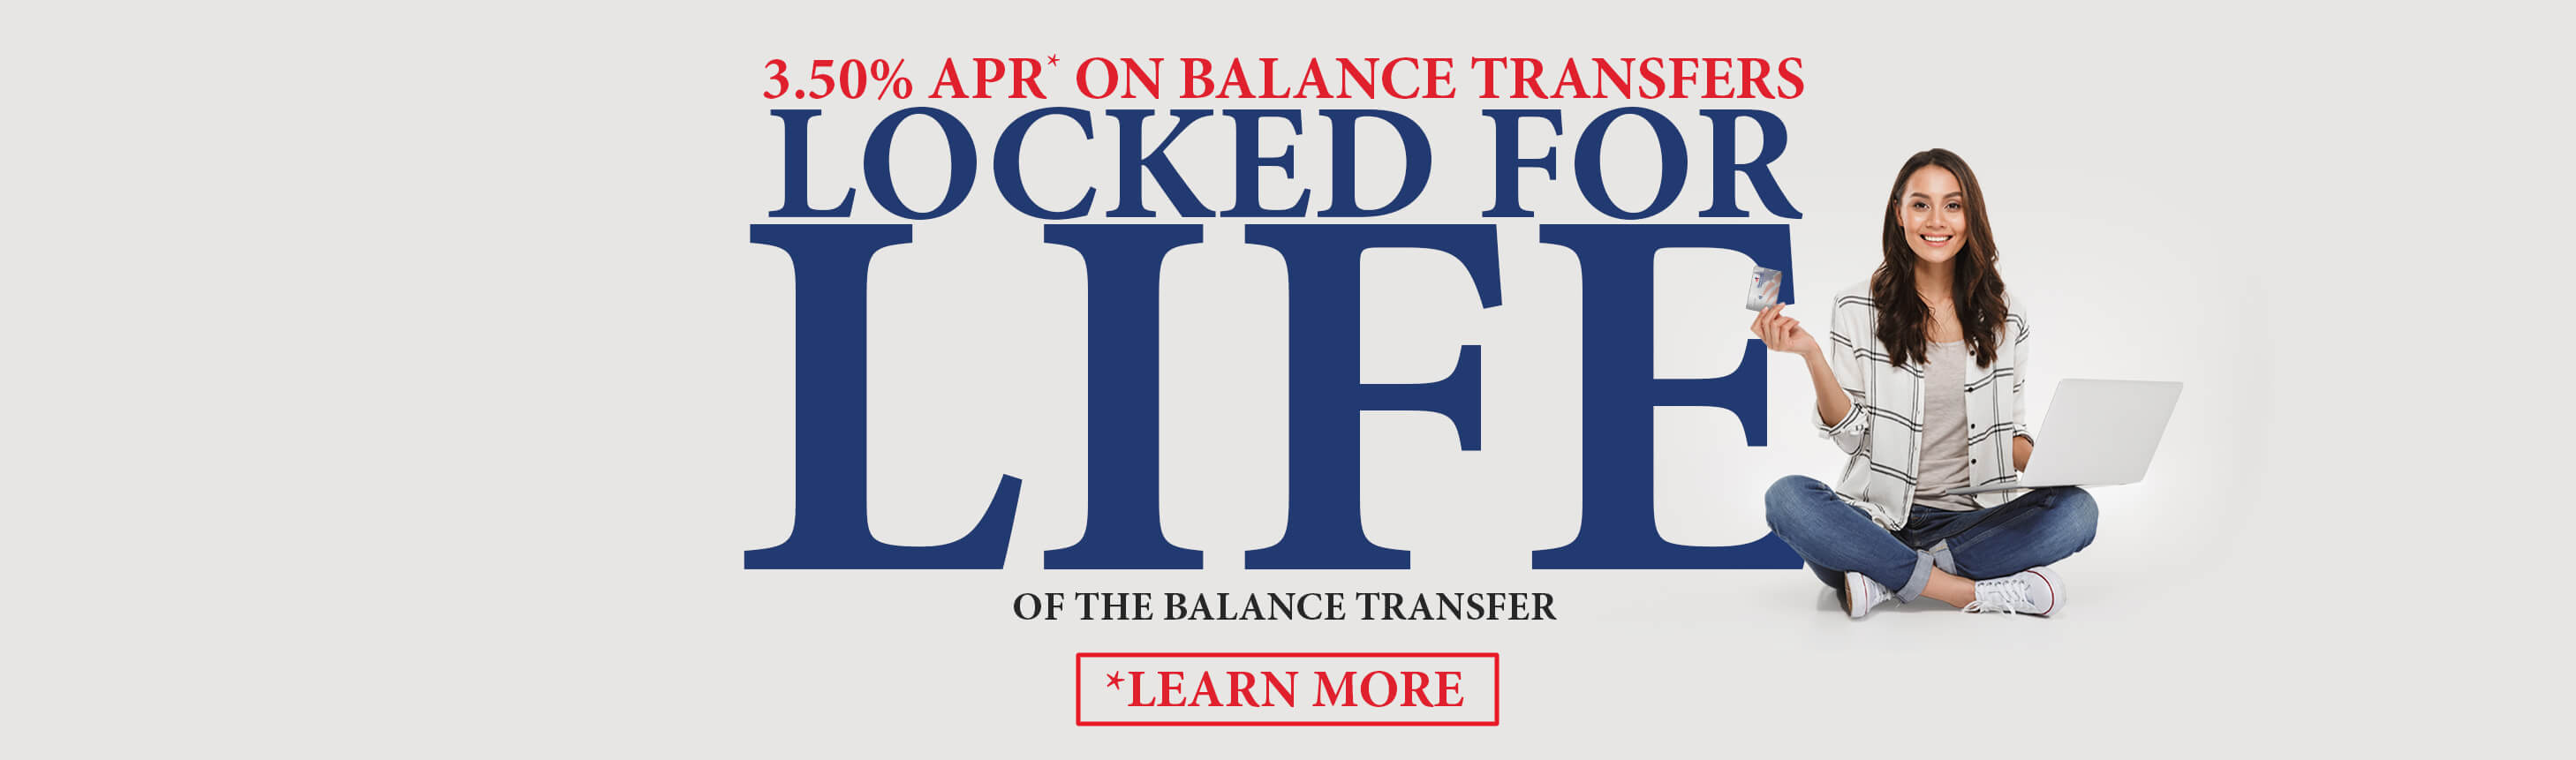 *APR = Annual Percentage Rate. Come by any branch location, call 740-775-3331, or visit https://www.homelandcu.com/lending/balance-transfer-form. The balance transfer process can take up to a week to 10 days. You need to continue to make your normal payments on all of your credit card accounts until the transferred amount appears as a payment on those credit card statements. HCU is not responsible for any additional charges or fees assessed by your other credit card account(s), or for payments that are late or lost in the mail. HCU is not able to close your other credit card accounts; you must contact those issuers directly. You may transfer balances from other non-HCU credit cards up to your established credit limit. The balance transfer promotional offer begins August 1, 2021 and is available until August 31, 2021. The APR will be 3.50% and the monthly Periodic rate of FINANCE CHARGE will be .029167% on your average daily balance of the amount for the life of the transfer(s). Balances transferred may increase your minimum payment due. (The minimum payment will be either 3% of your total New Balance or $10.00, whichever is greater.) Balance transfers are treated as cash advances and will accrue finance charges from the date that advance was disbursed. Payments will be applied to all other balances prior to applying to this promotional balance. Balance transfers are not eligible for ScoreCard® Rewards Points and may not be used to pay other HCU accounts. Accounts that are or become 60 days past due will not qualify for this promotion and will have any remaining promotional balances migrate to standard terms. All terms and conditions outlined in the Credit Card Agreement apply. HCU reserves the right to decline any balance transfer request.